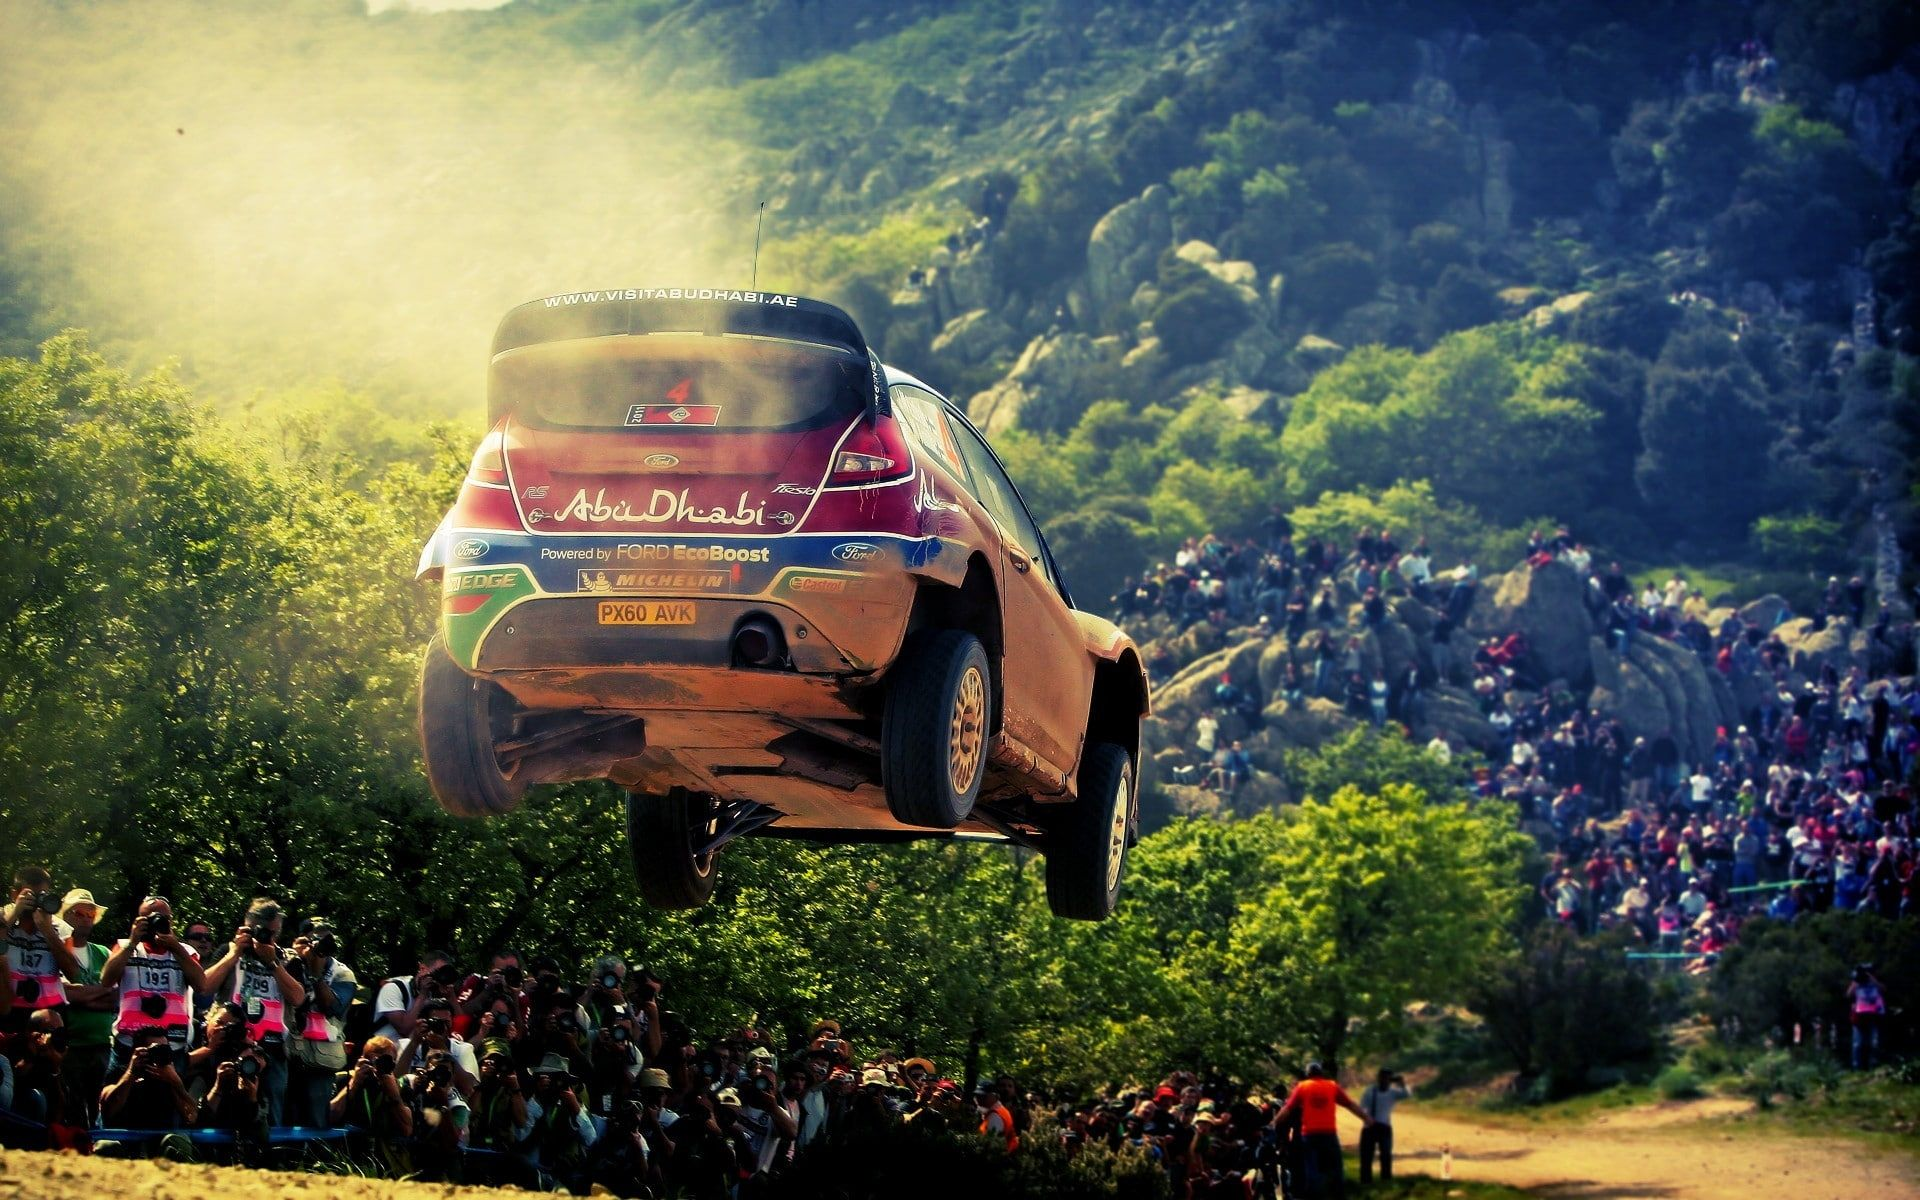 Ford Rally Cars Airborne Car Crowds Rally 1080p Wallpaper Hdwallpaper Desktop Rally Car Car Ford Car Wallpapers